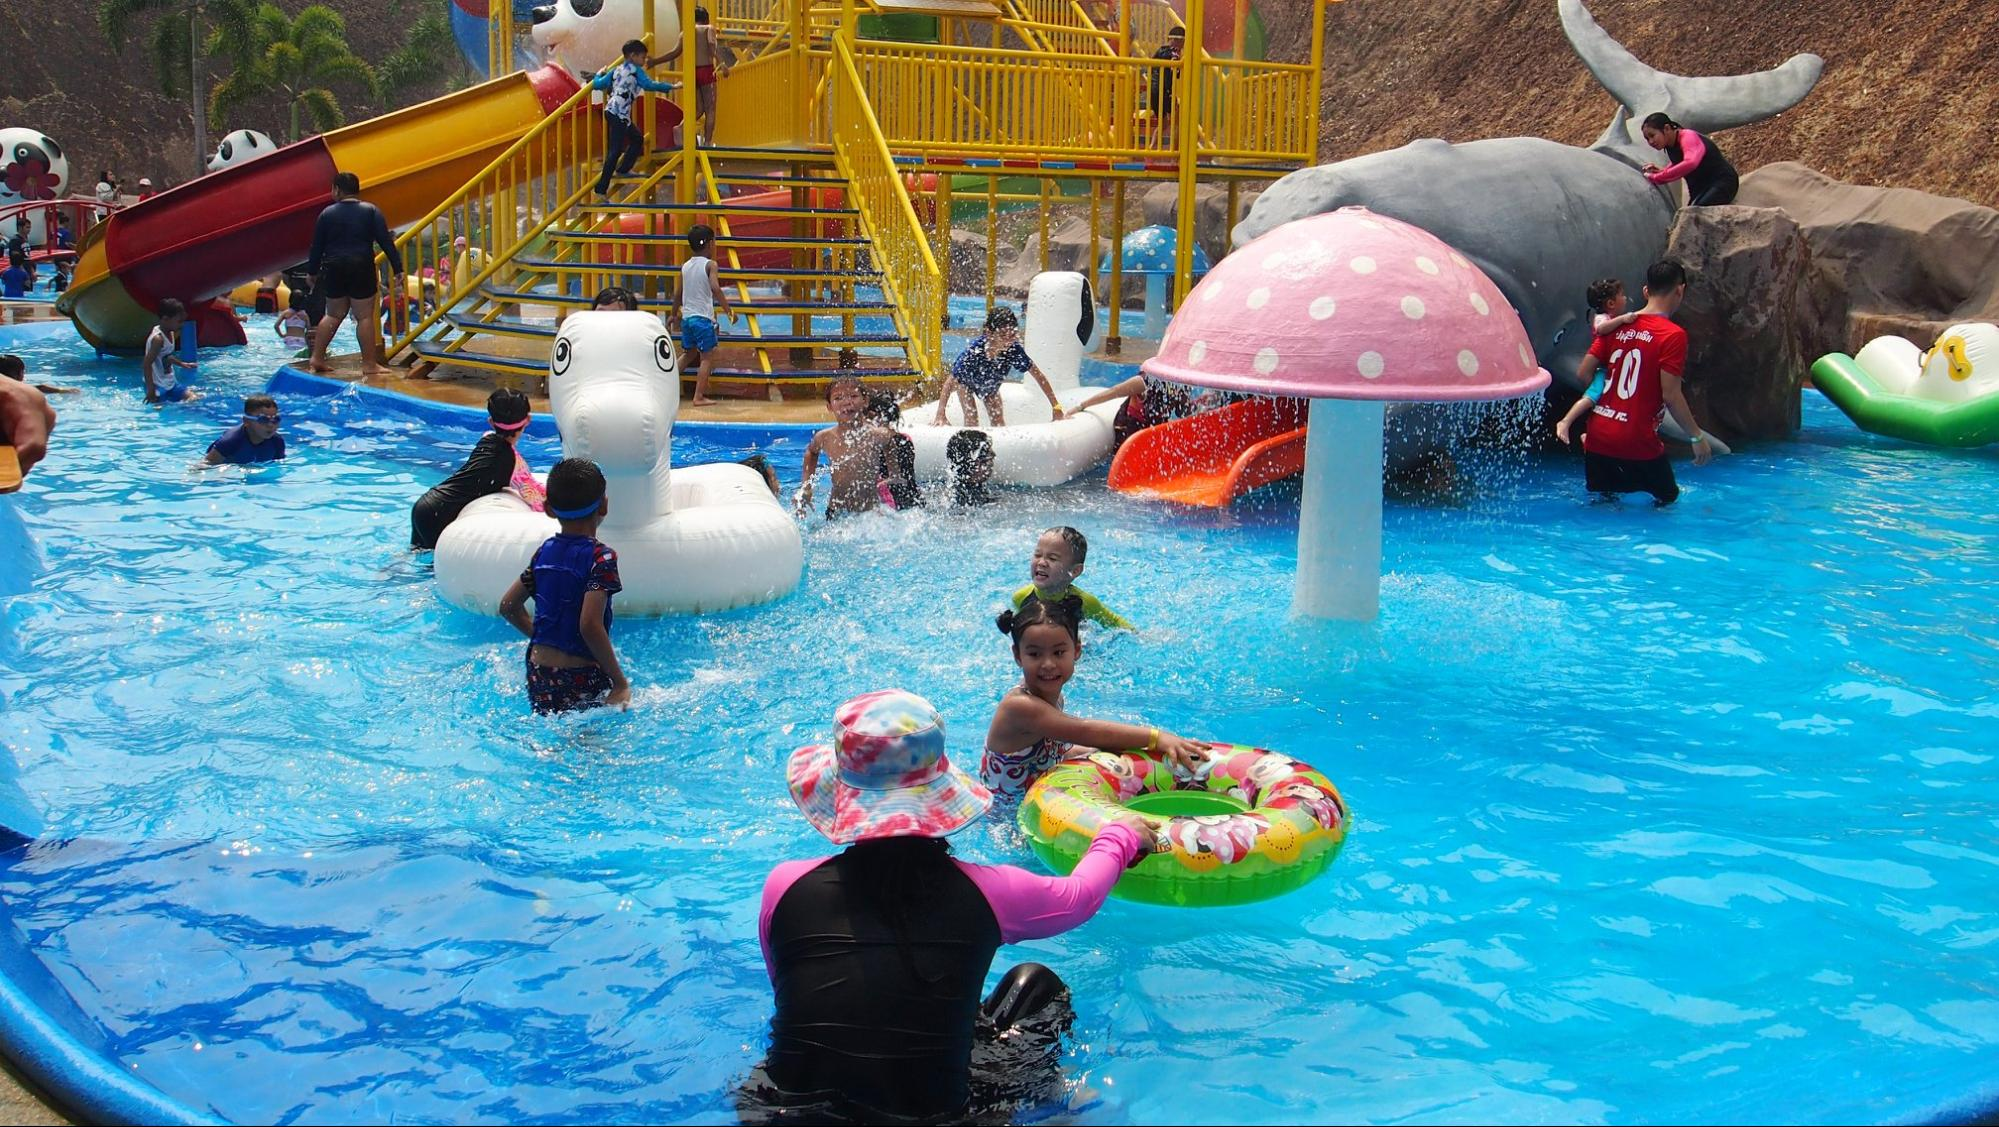 The Kiddy Water park Session